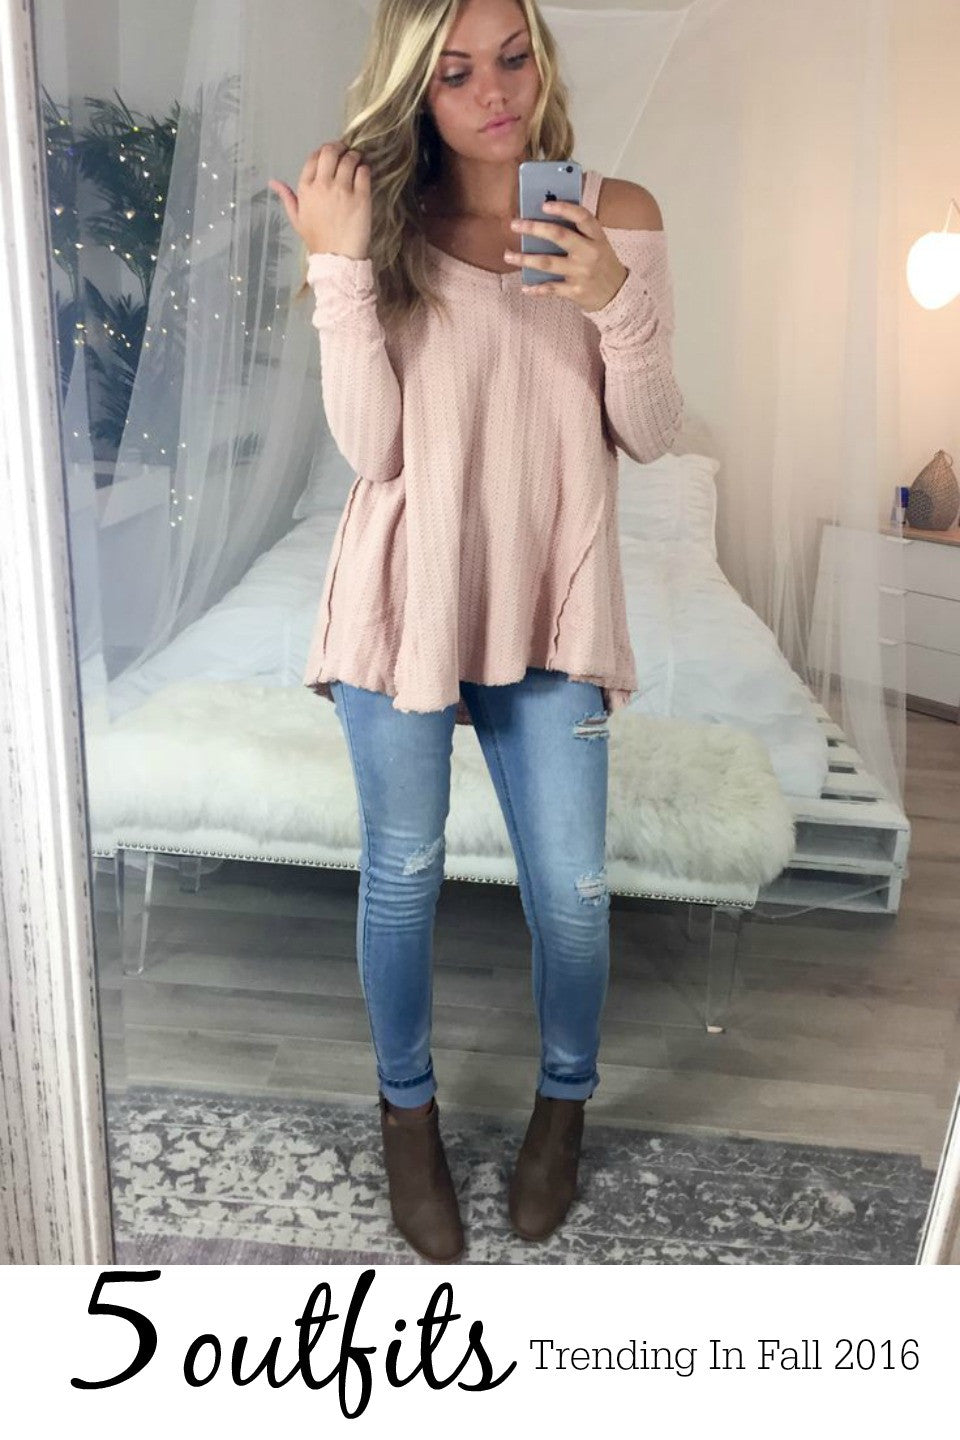 5 Outfits Trending in Fall 2016